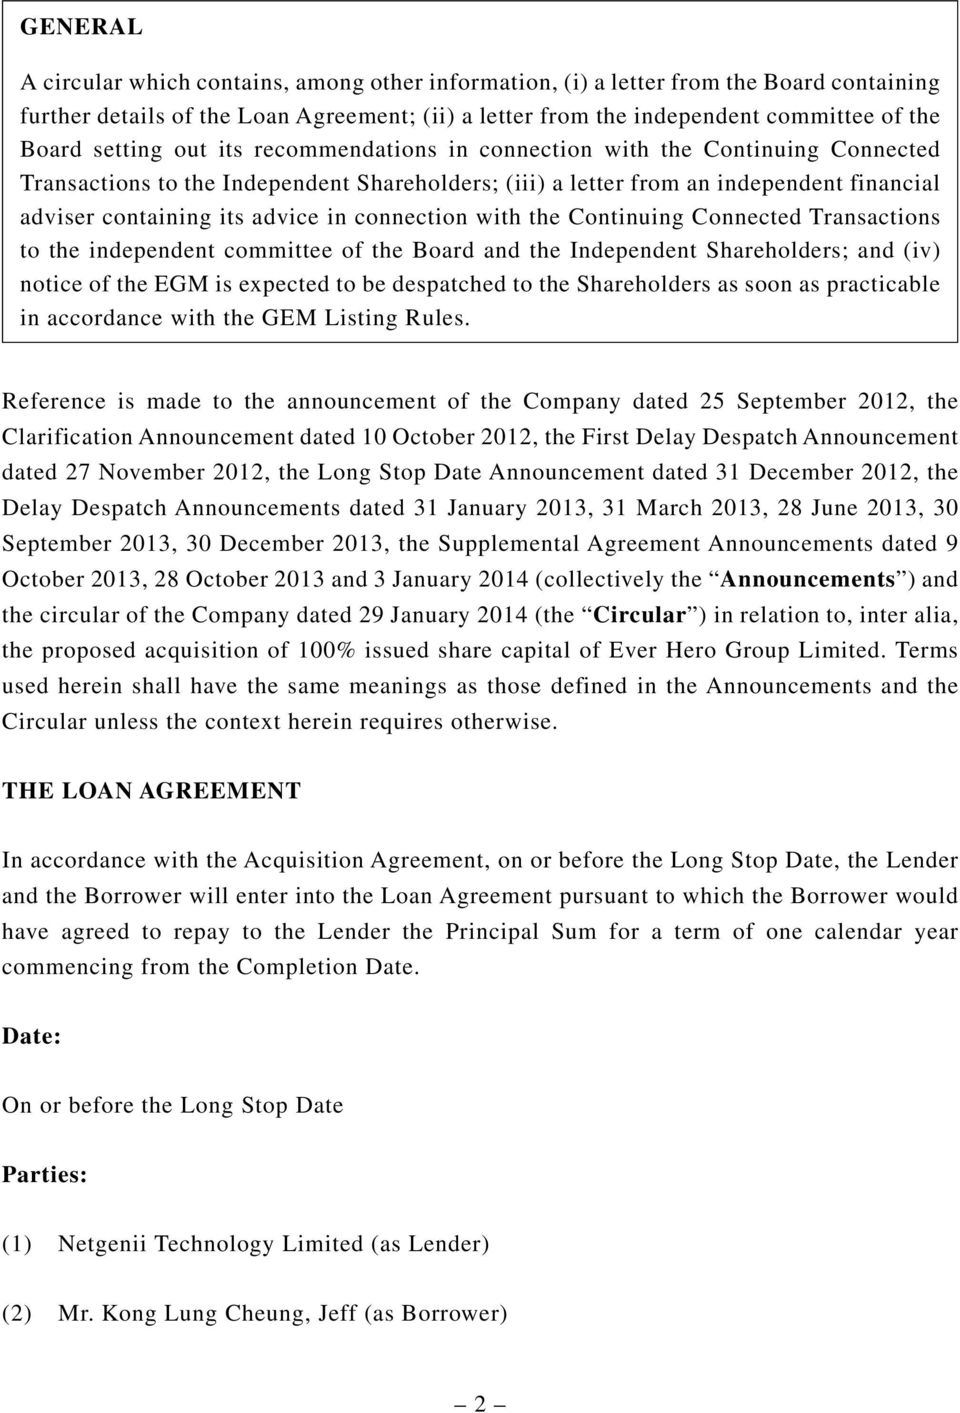 connection with the Continuing Connected Transactions to the independent committee of the Board and the Independent Shareholders; and (iv) notice of the EGM is expected to be despatched to the